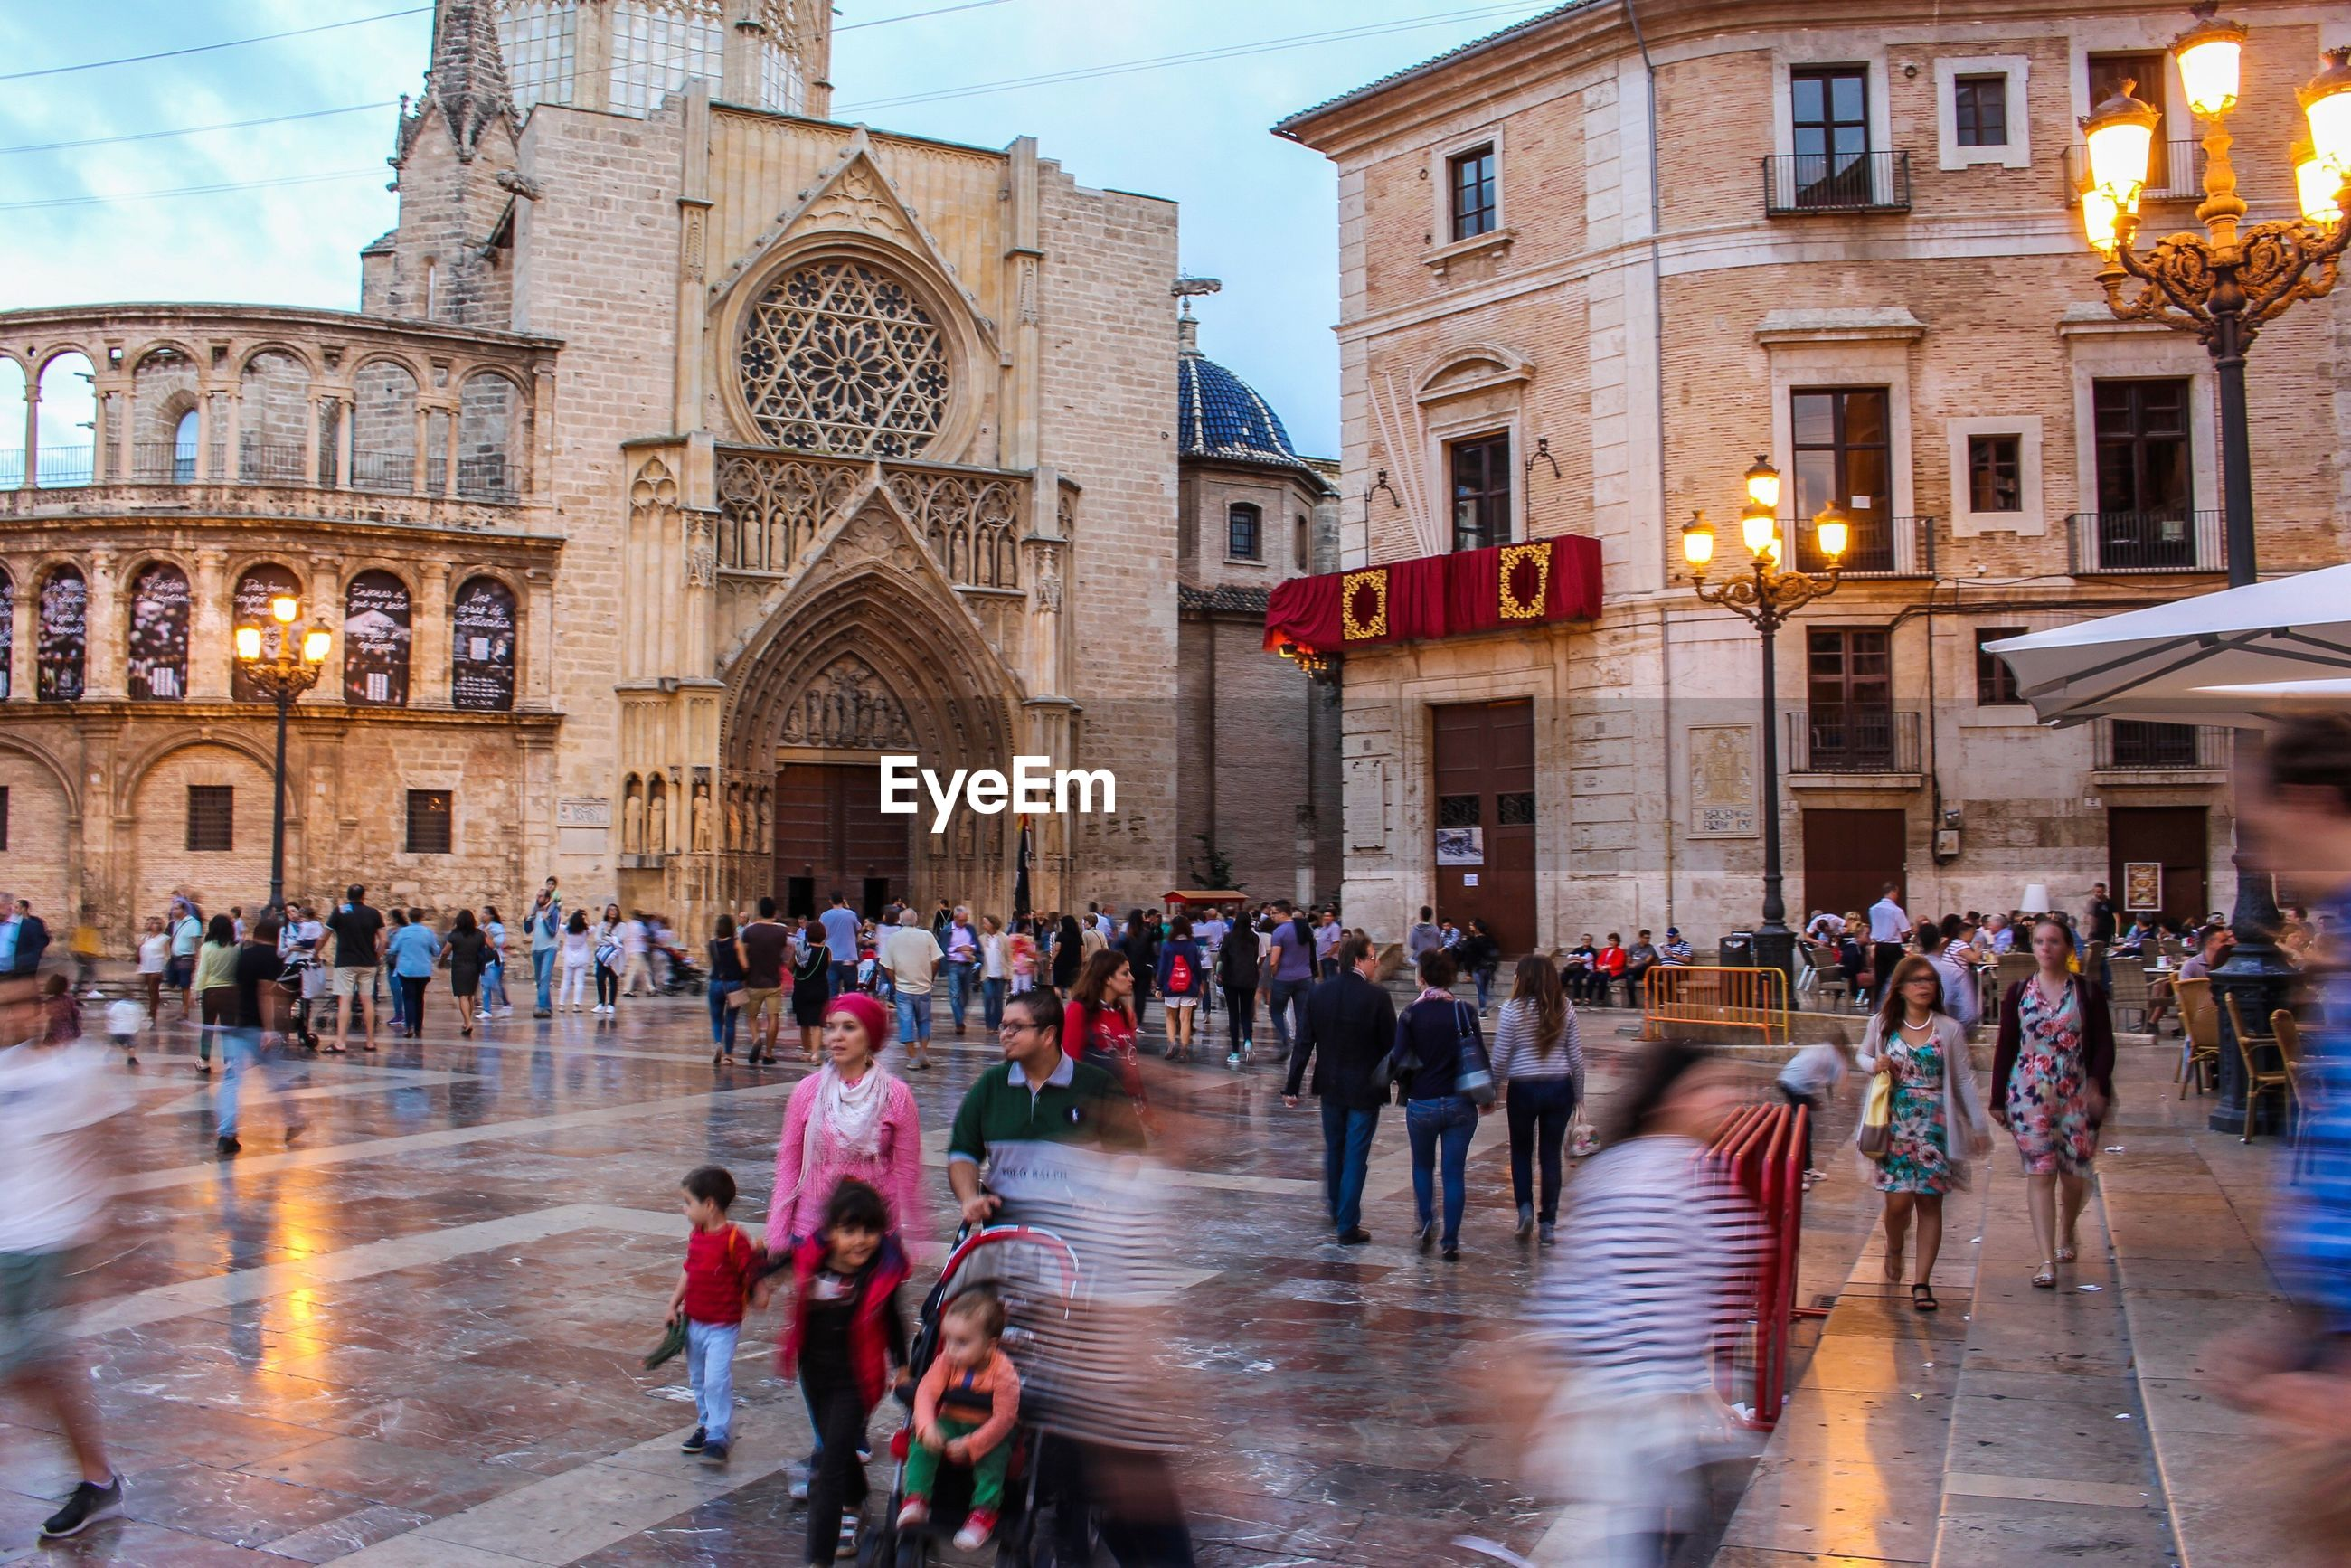 building exterior, large group of people, architecture, built structure, person, city, lifestyles, men, city life, leisure activity, wet, crowd, illuminated, travel destinations, tourist, culture, tourism, in front of, famous place, outdoors, place of worship